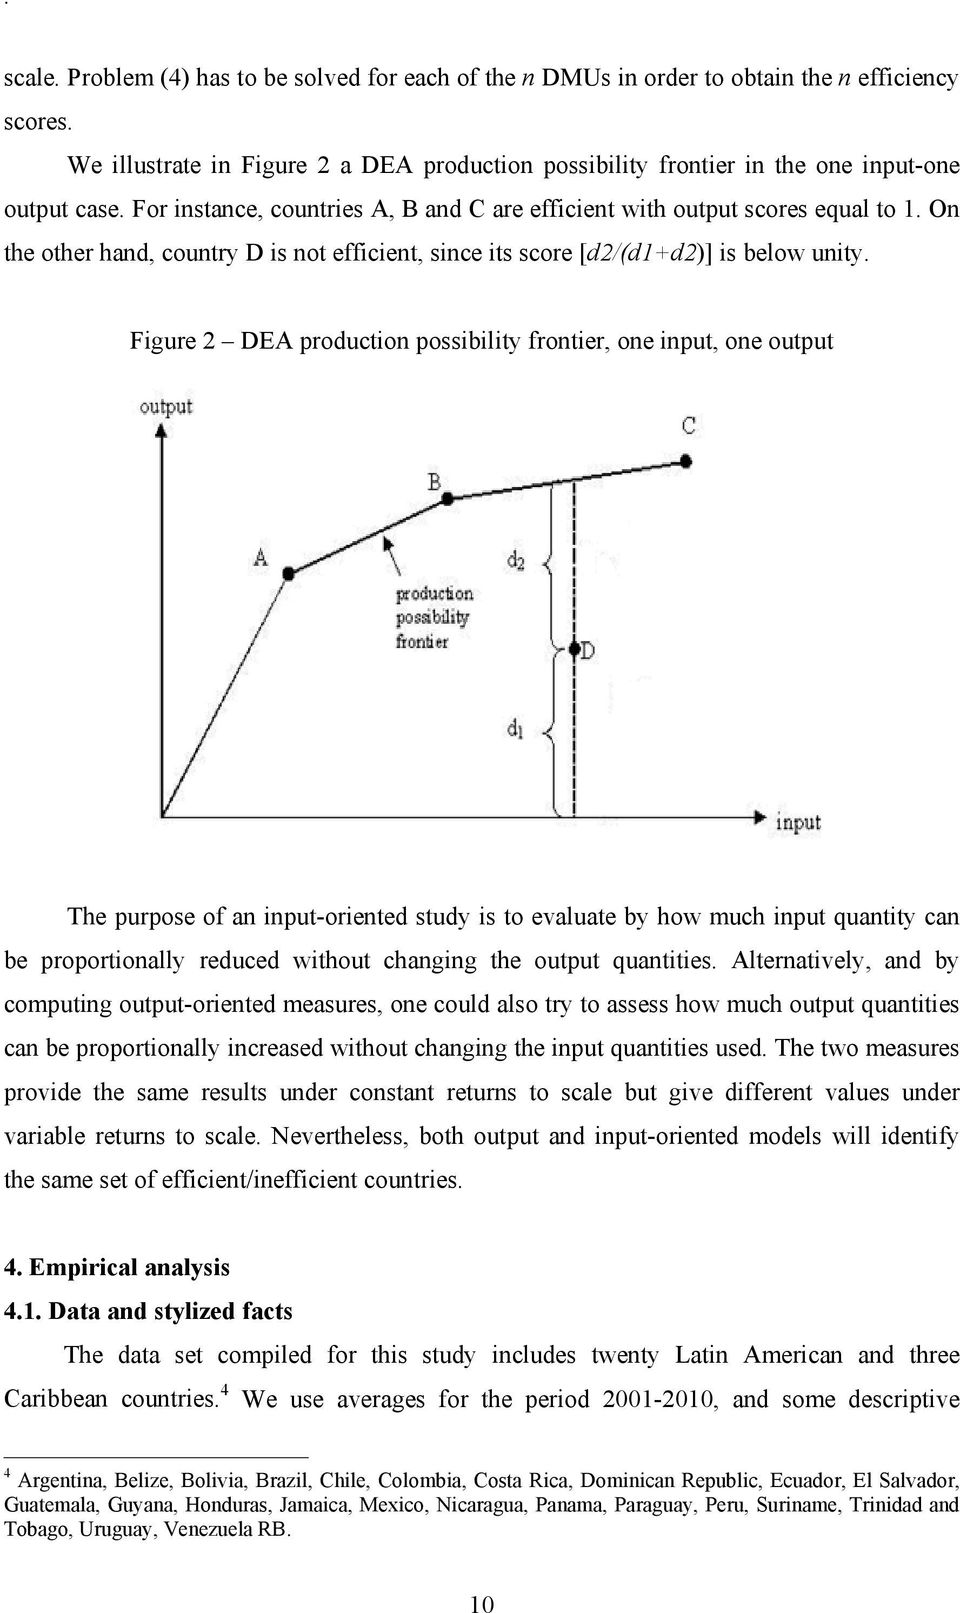 Figure 2 DEA production possibility frontier, one input, one output The purpose of an input-oriented study is to evaluate by how much input quantity can be proportionally reduced without changing the